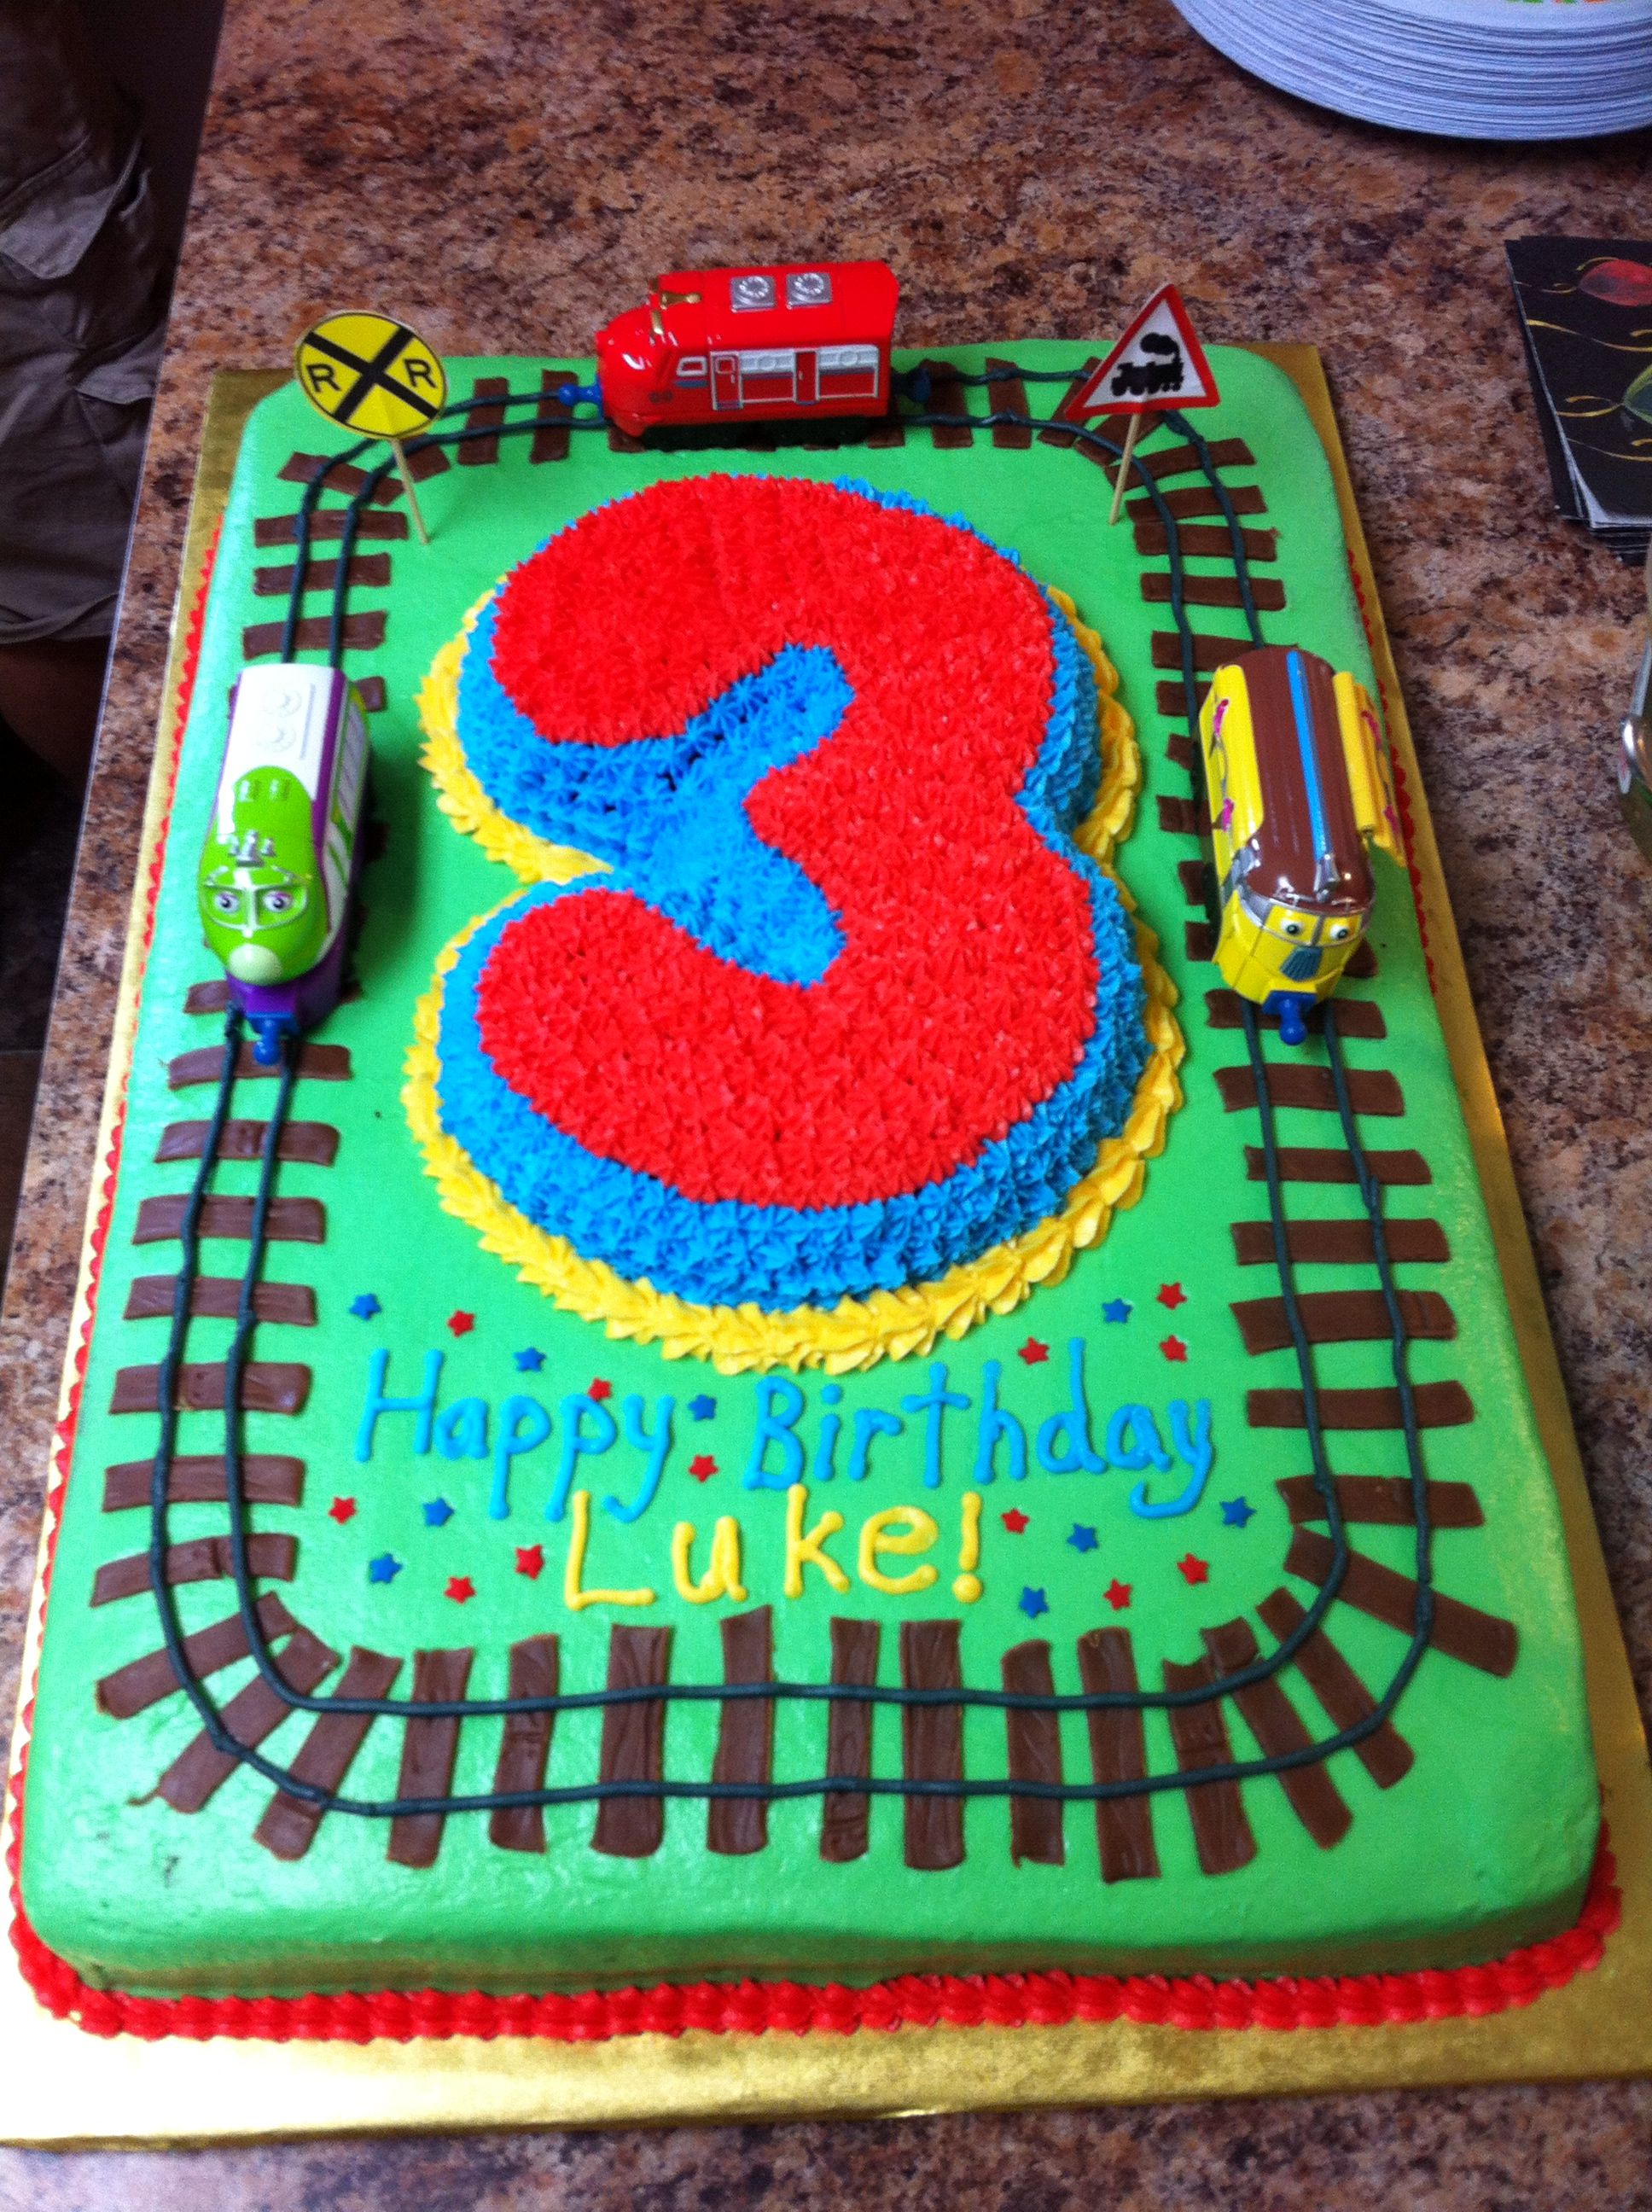 3 Year Old Chuggington Cake Megan Something Similar To This For His Birthday